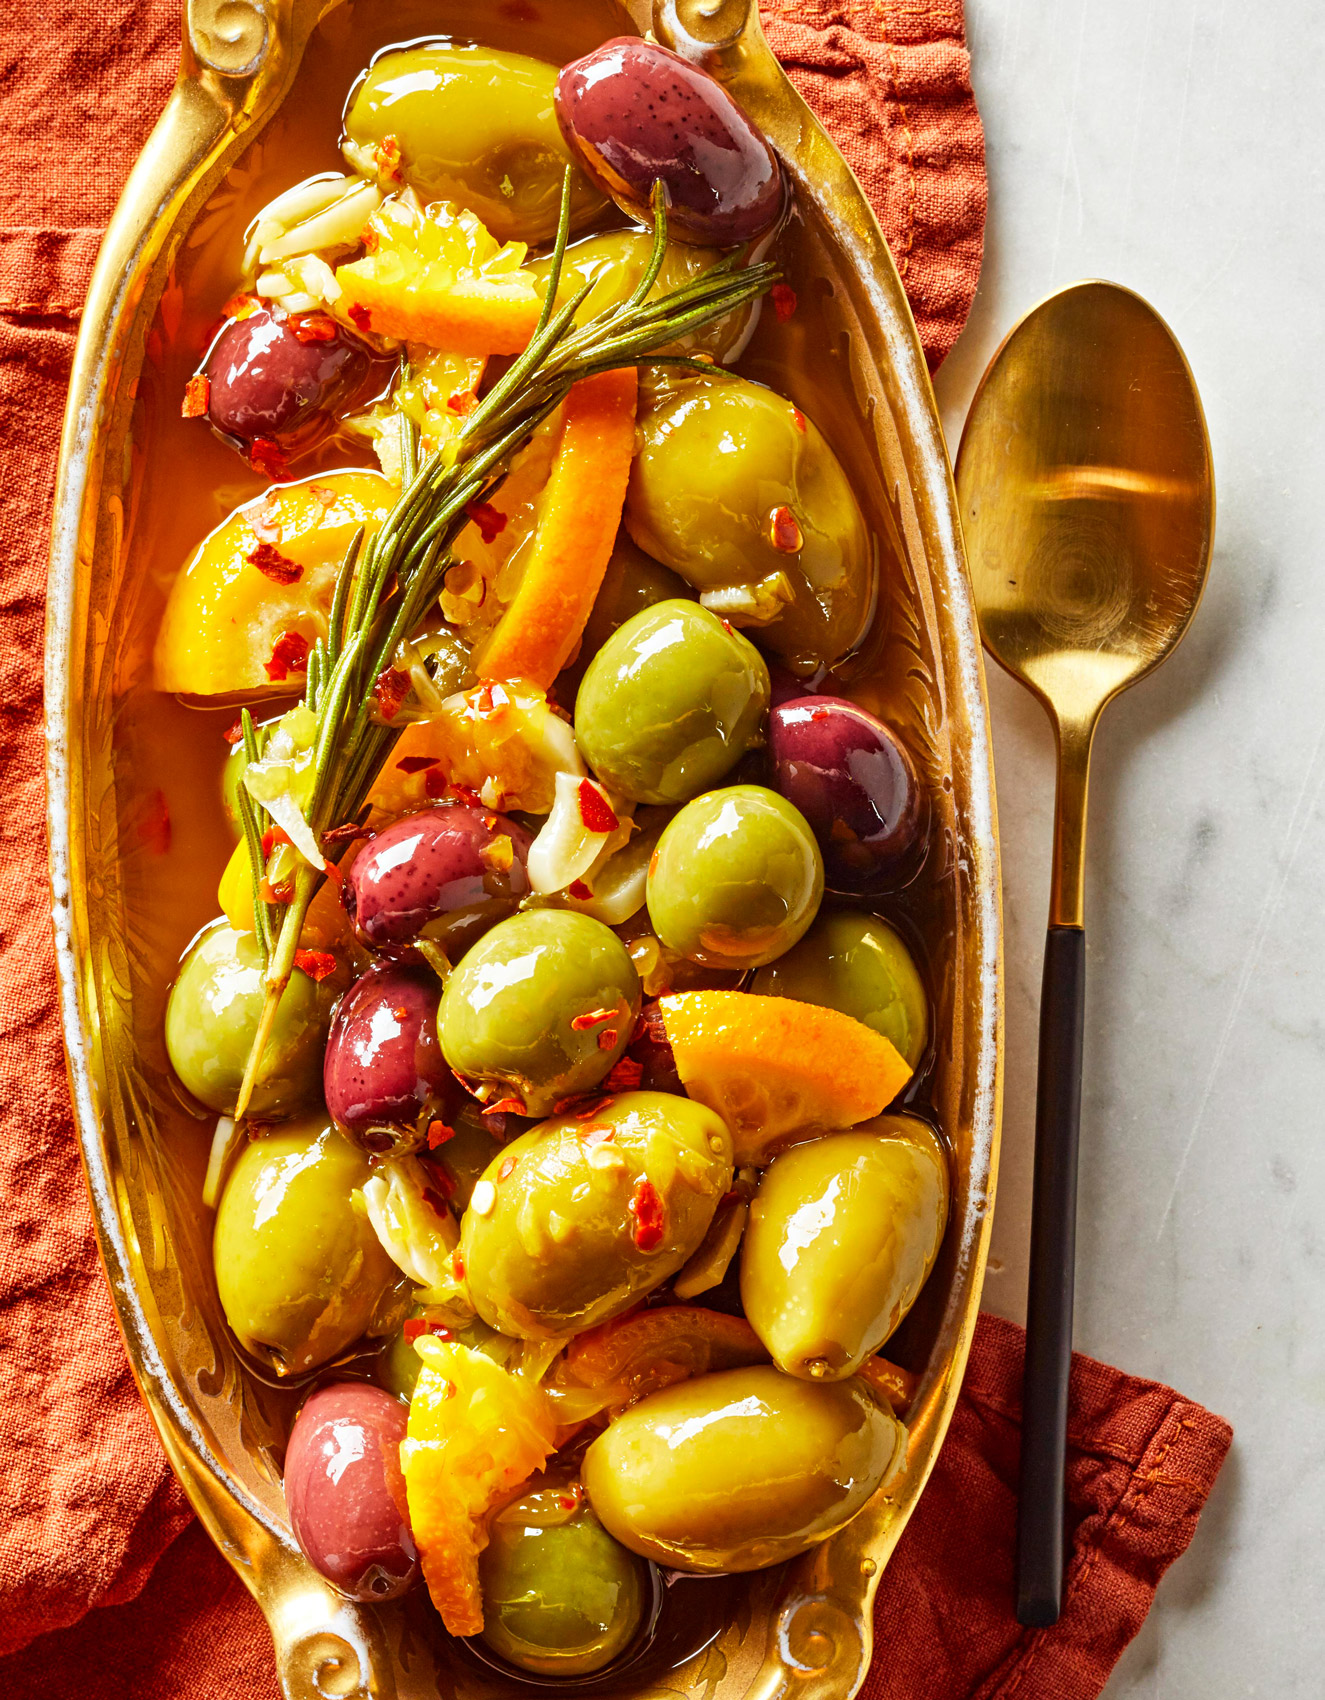 Marinated Olives and Clementines with Rosemary